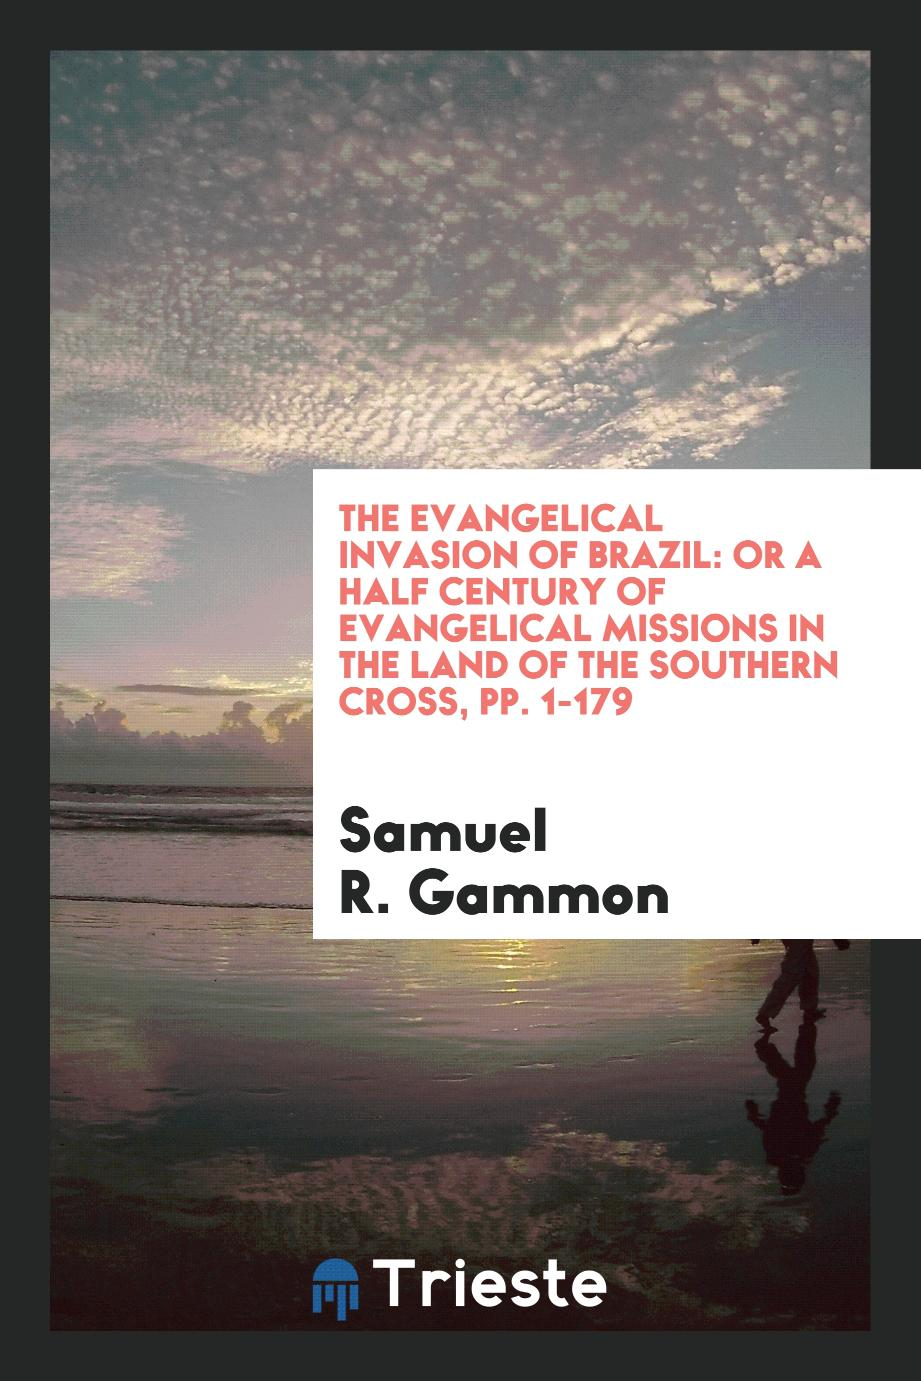 The Evangelical Invasion of Brazil: Or a Half Century of Evangelical Missions in the Land of the Southern Cross, pp. 1-179